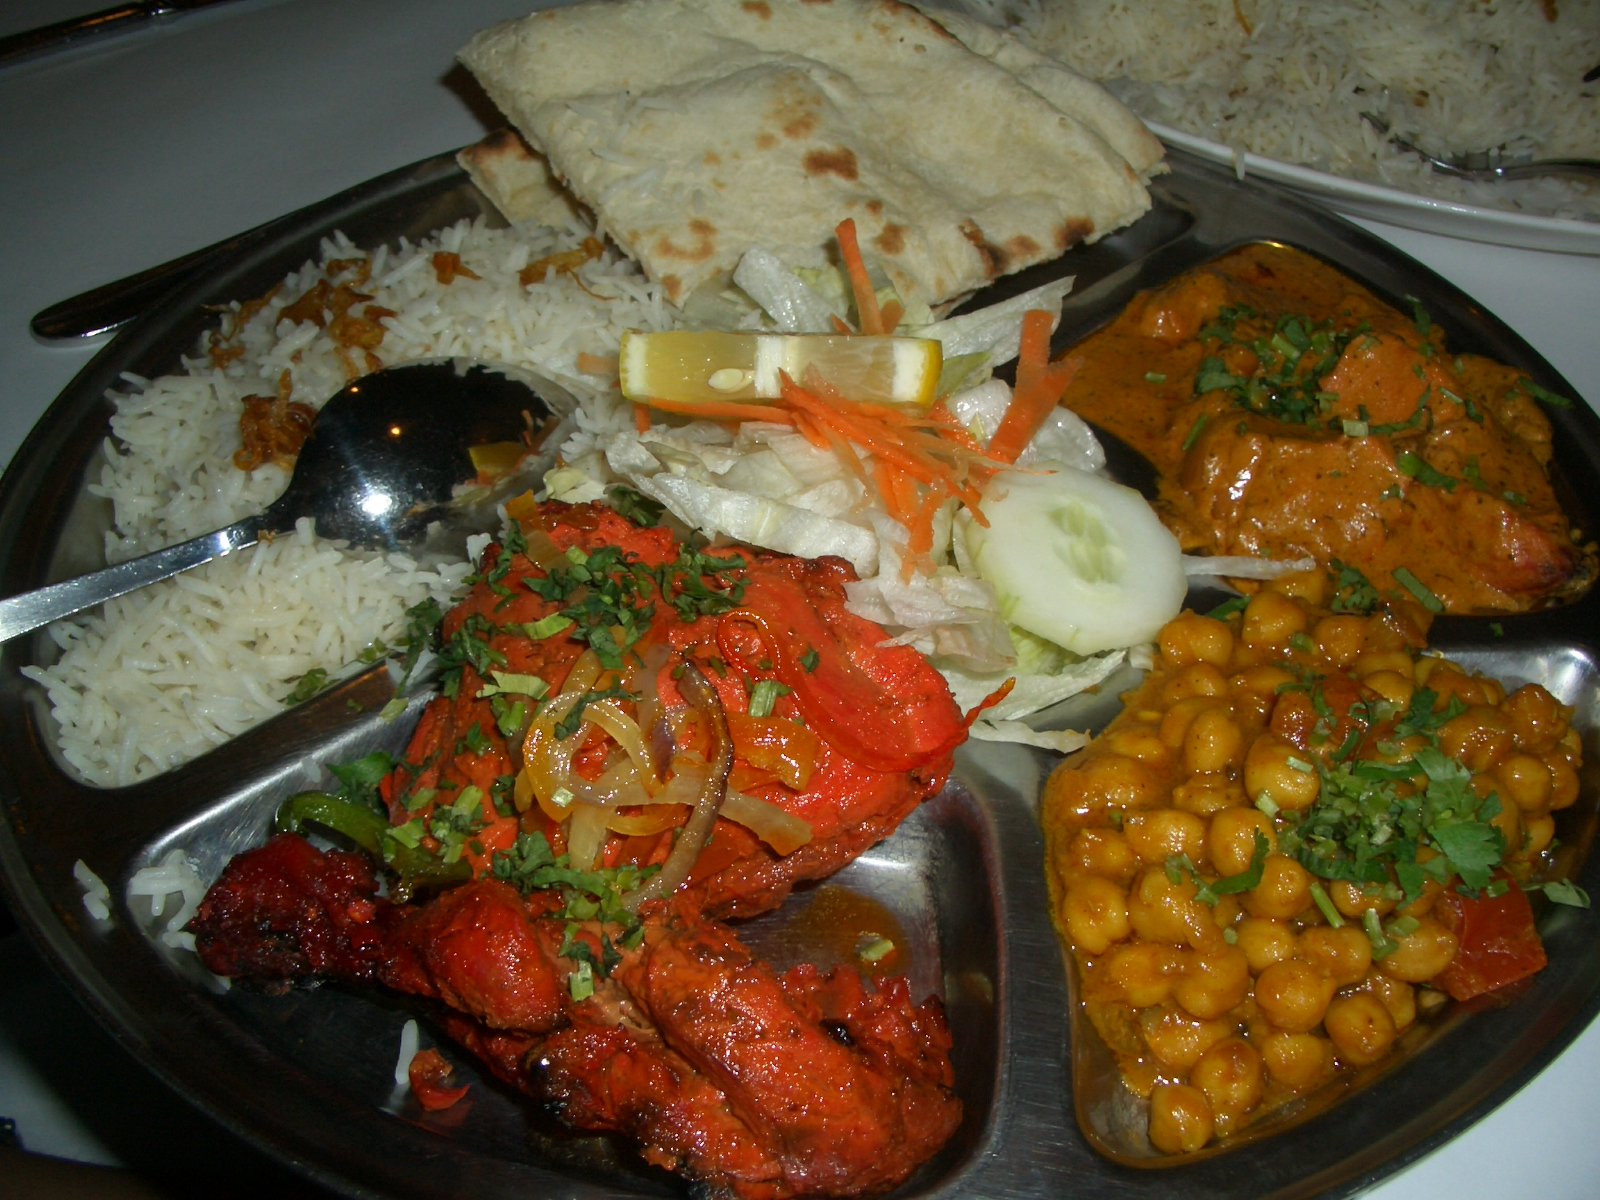 Enjoy delicious indian food at best restaurants visiting a good indian eatery can be a wholesome experience but a slight confusion can emerge as what to order on the menu will present ponderous dishes forumfinder